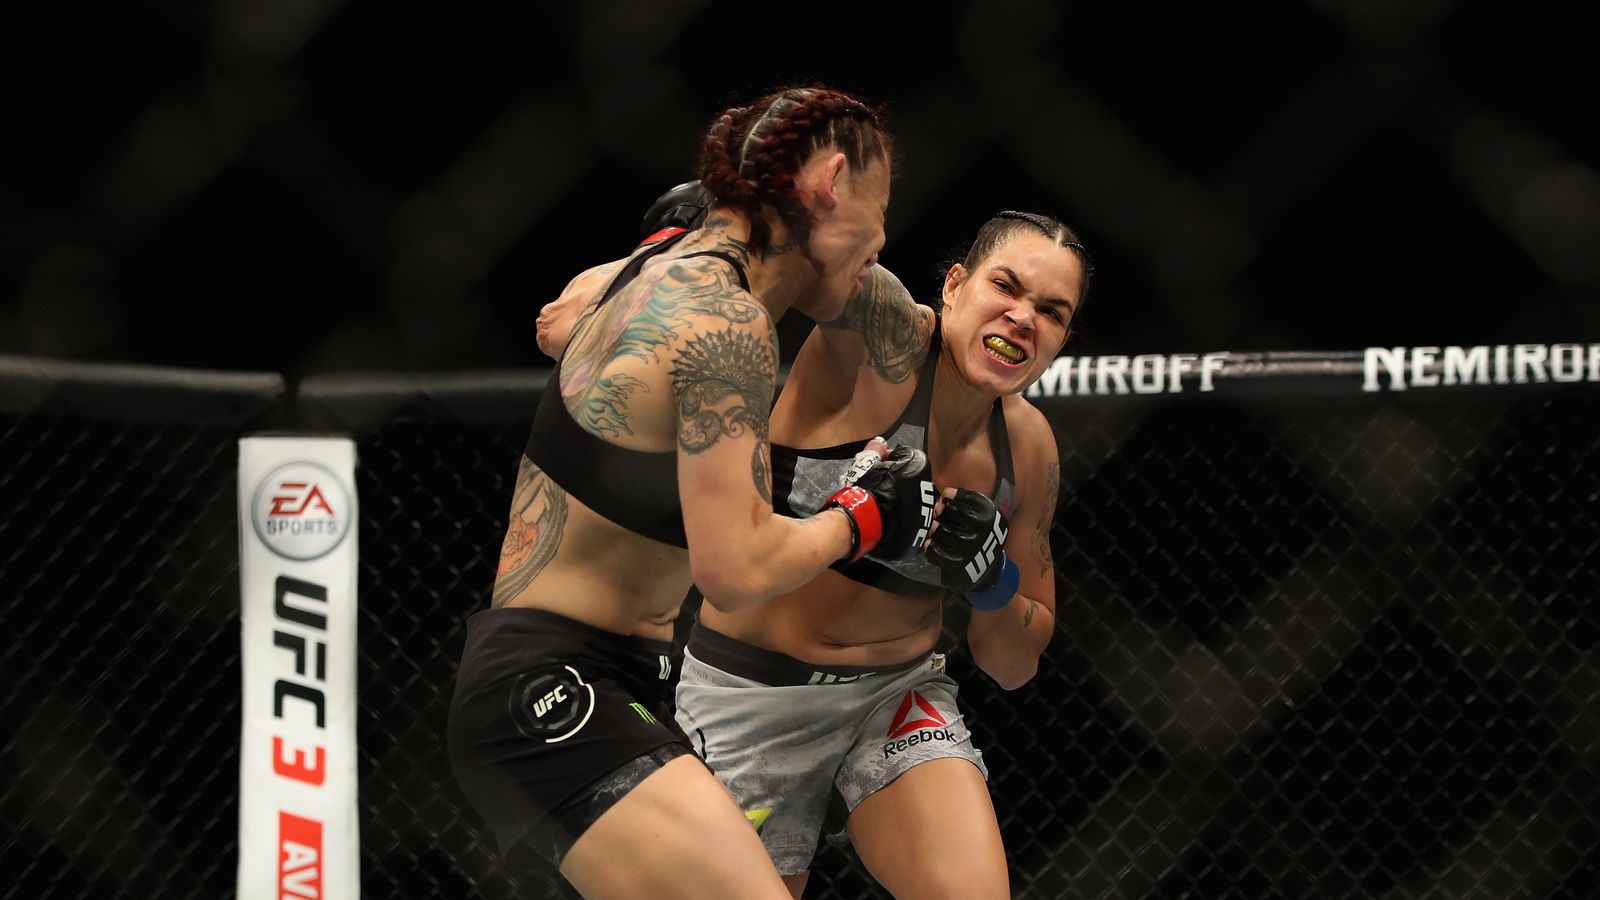 UFC 239 Free Fight Video: Watch Amanda Nunes become champ-champ by obliterating Cris Cyborg